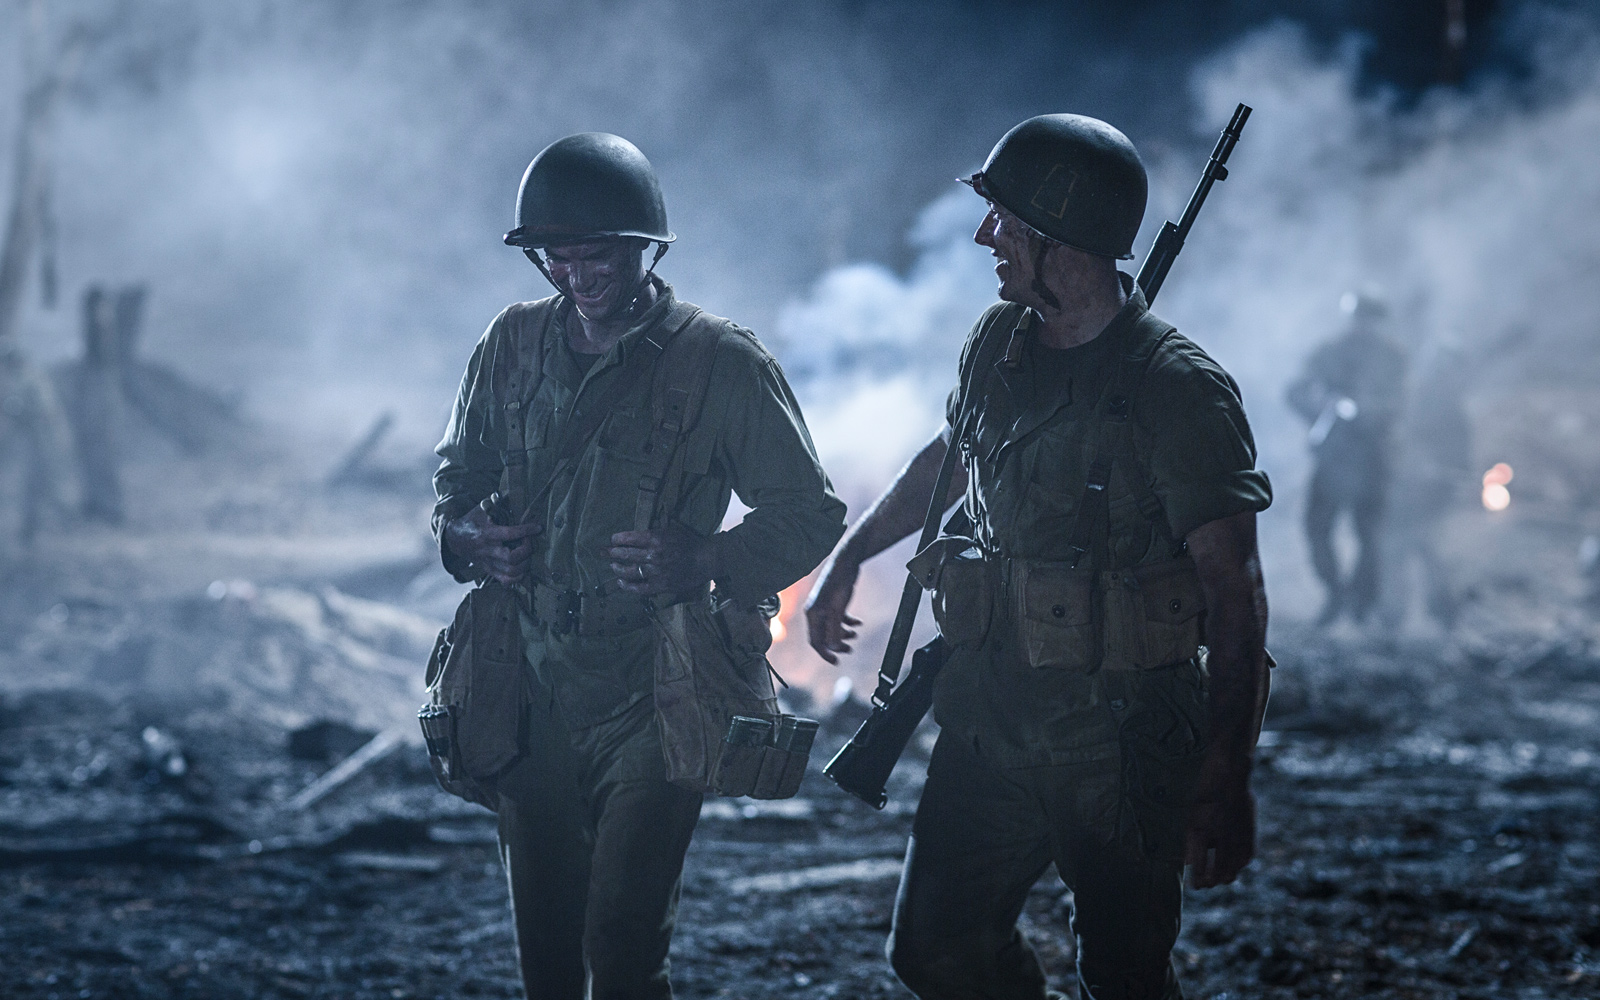 Hacksaw Ridge Promotes Peace Making In The Midst Of Violence Scenes